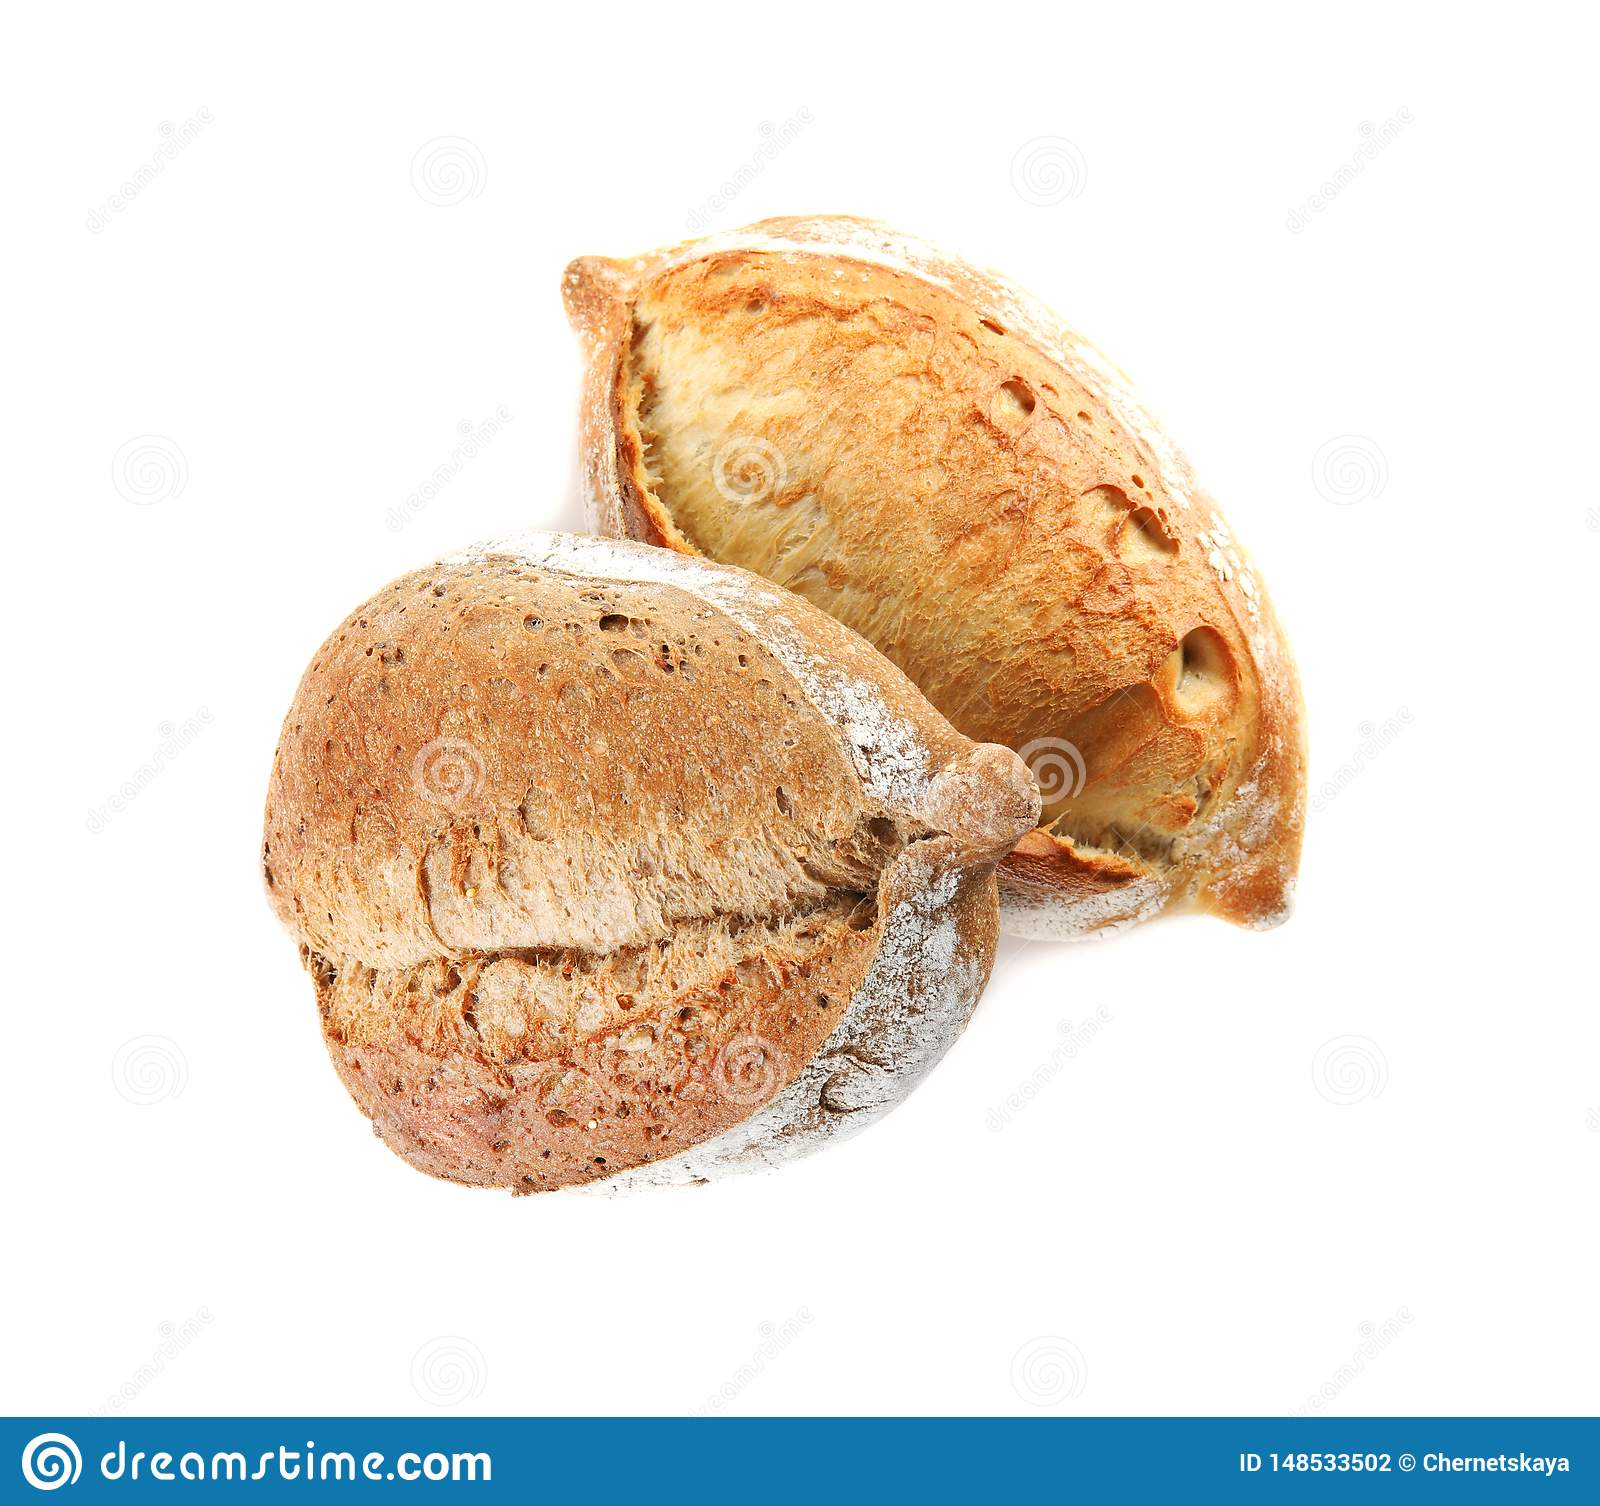 Loaves of fresh bread isolated on white